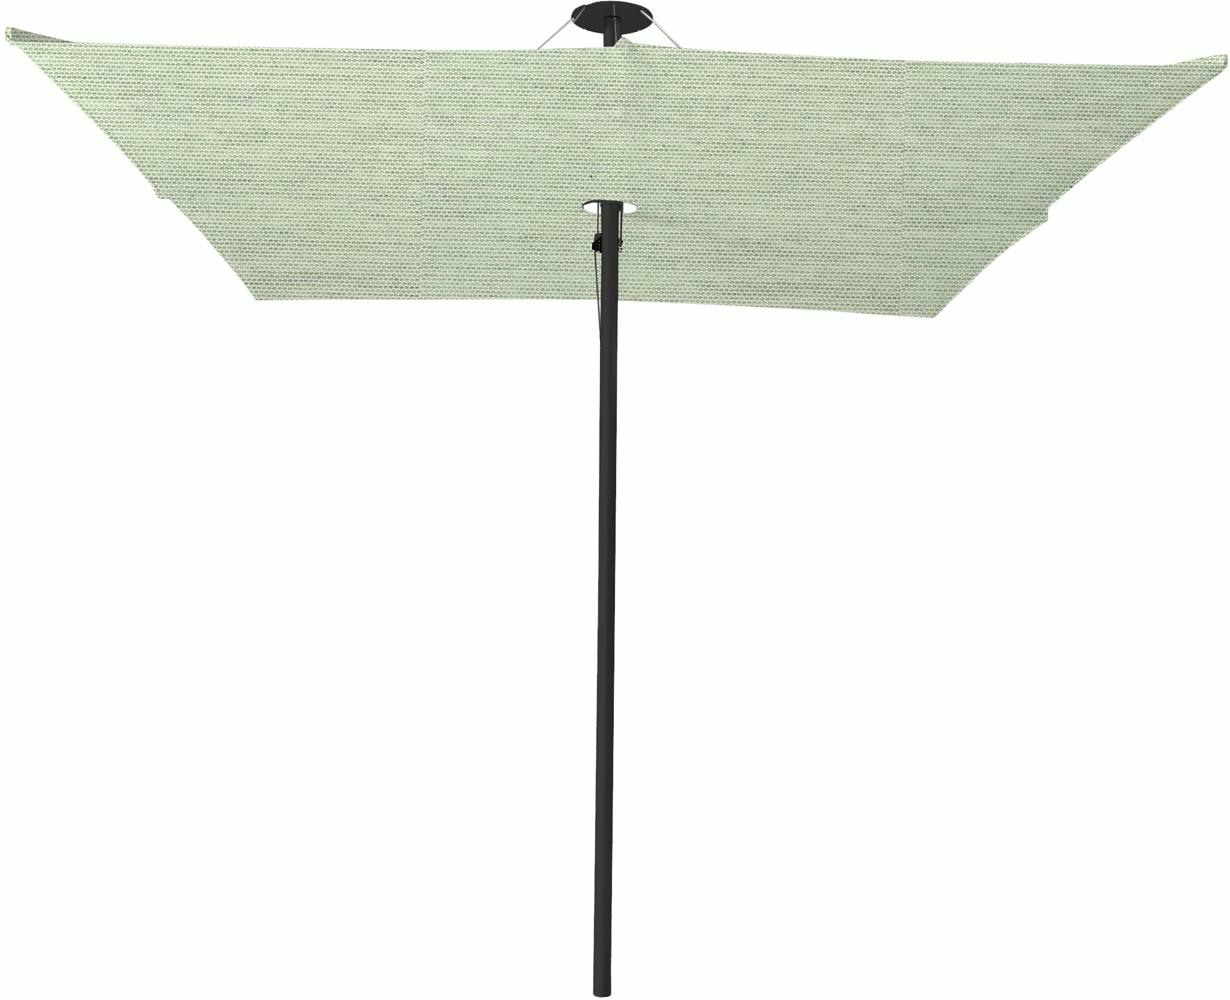 Infina center post umbrella, 2,5 m square, with frame in Dusk and Solidum Mint canopy.